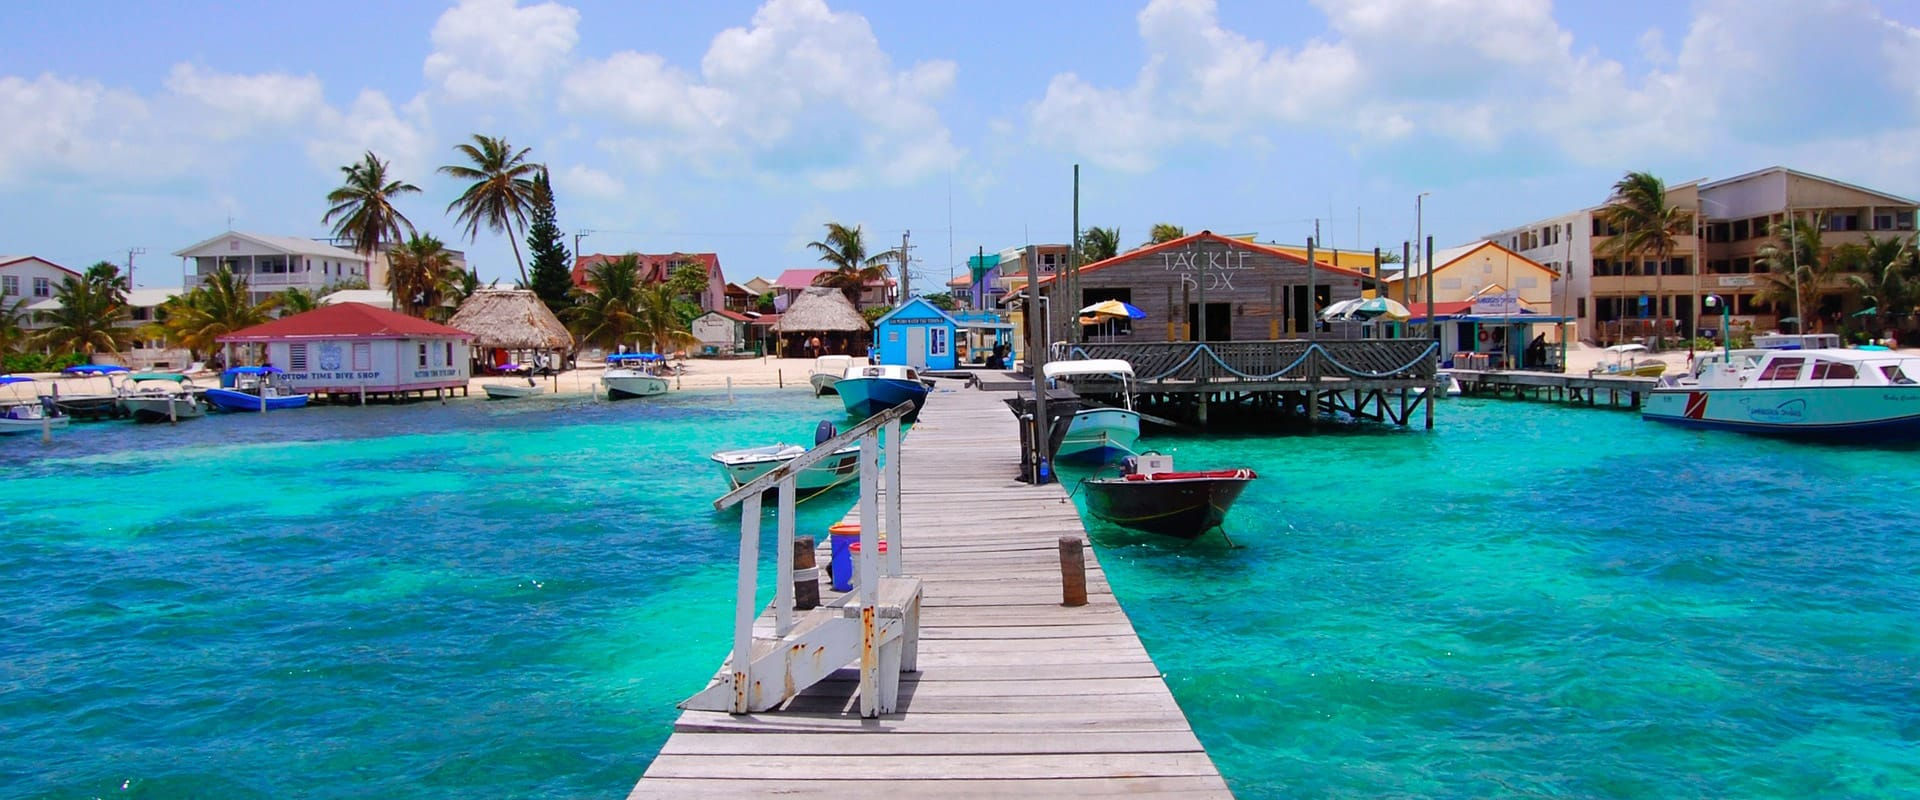 Dock off of San Pedro, Ambergris Caye